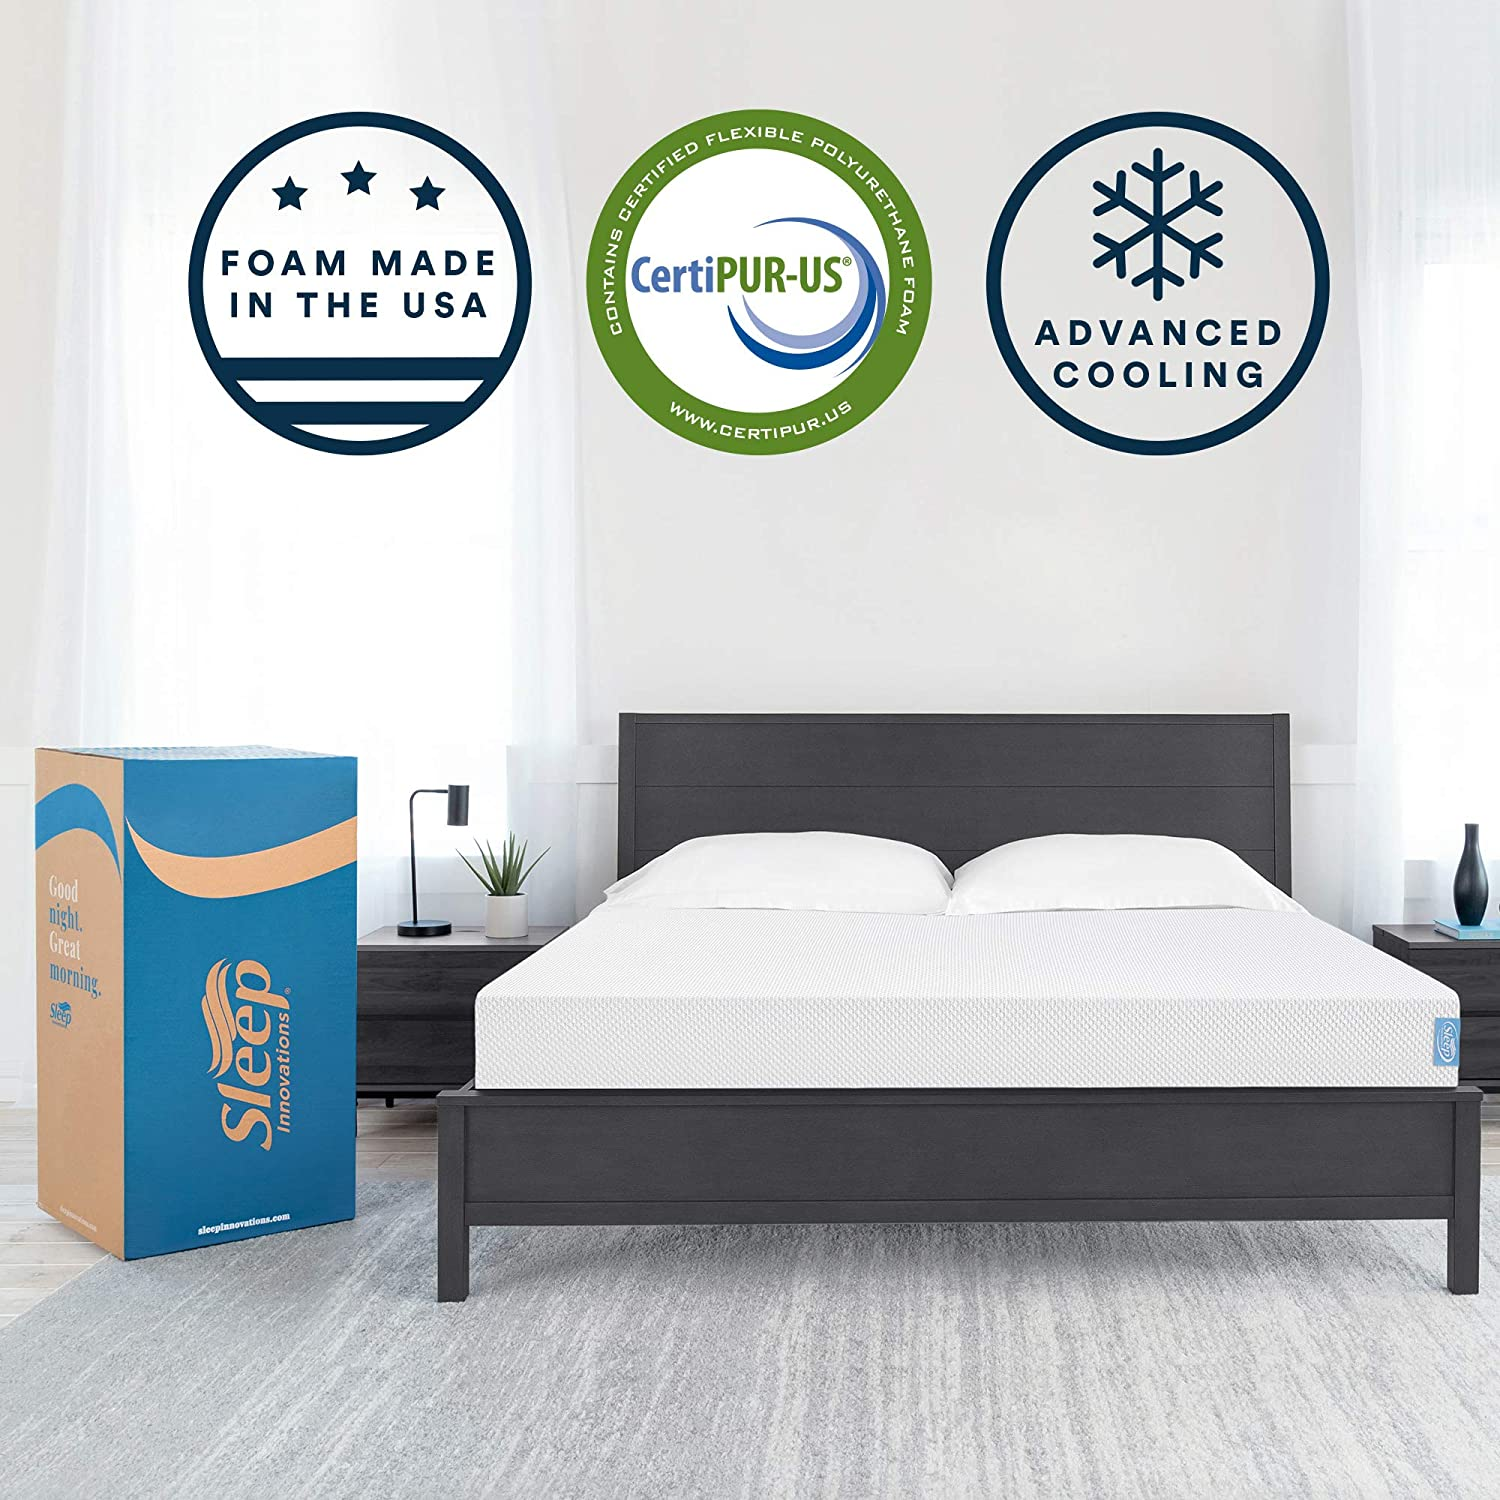 Top 10 Best Memory Foam Mattress (2020 Review & Buying Guide) 5